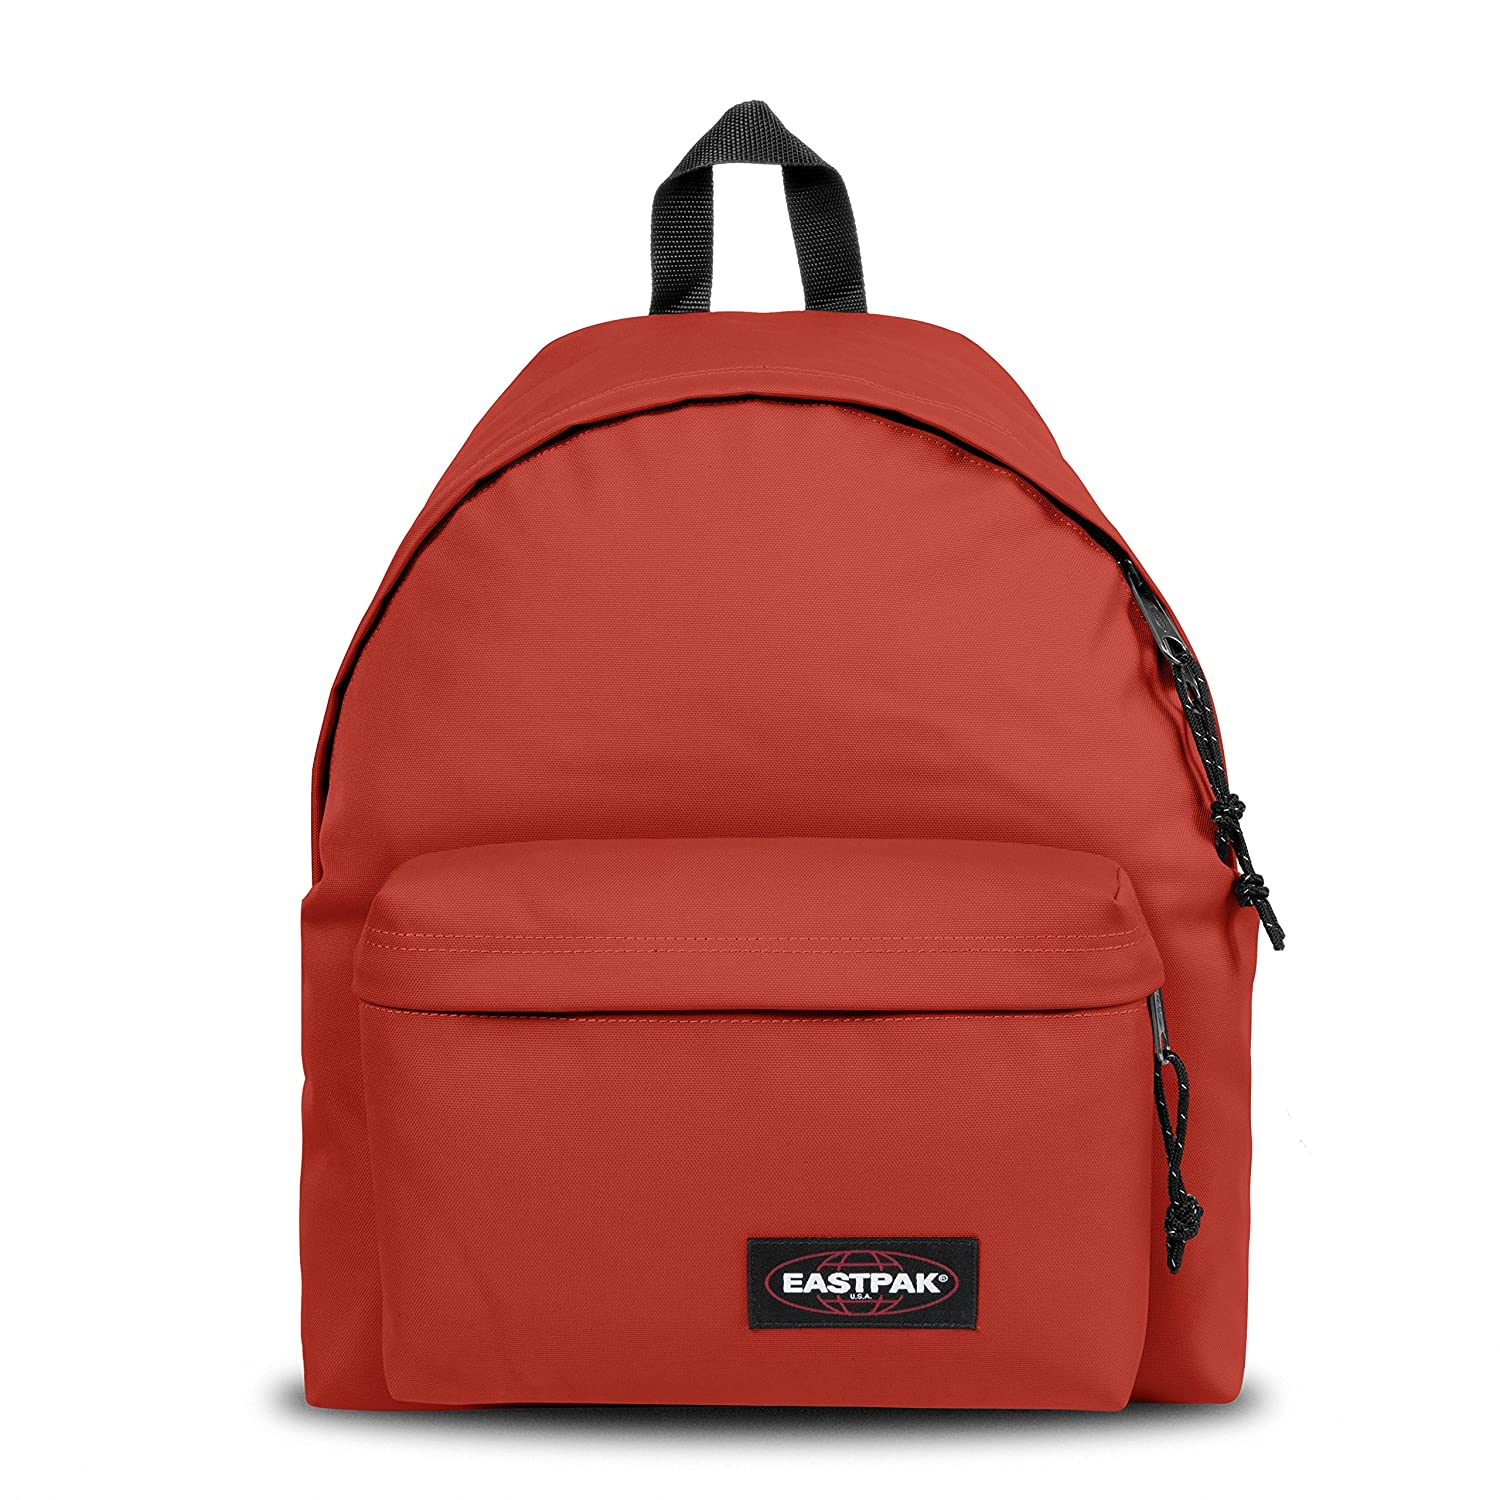 EASTPAK PADDED PAK'R BACKPACK (TERRACOTTA RED) B01NBB93YJ